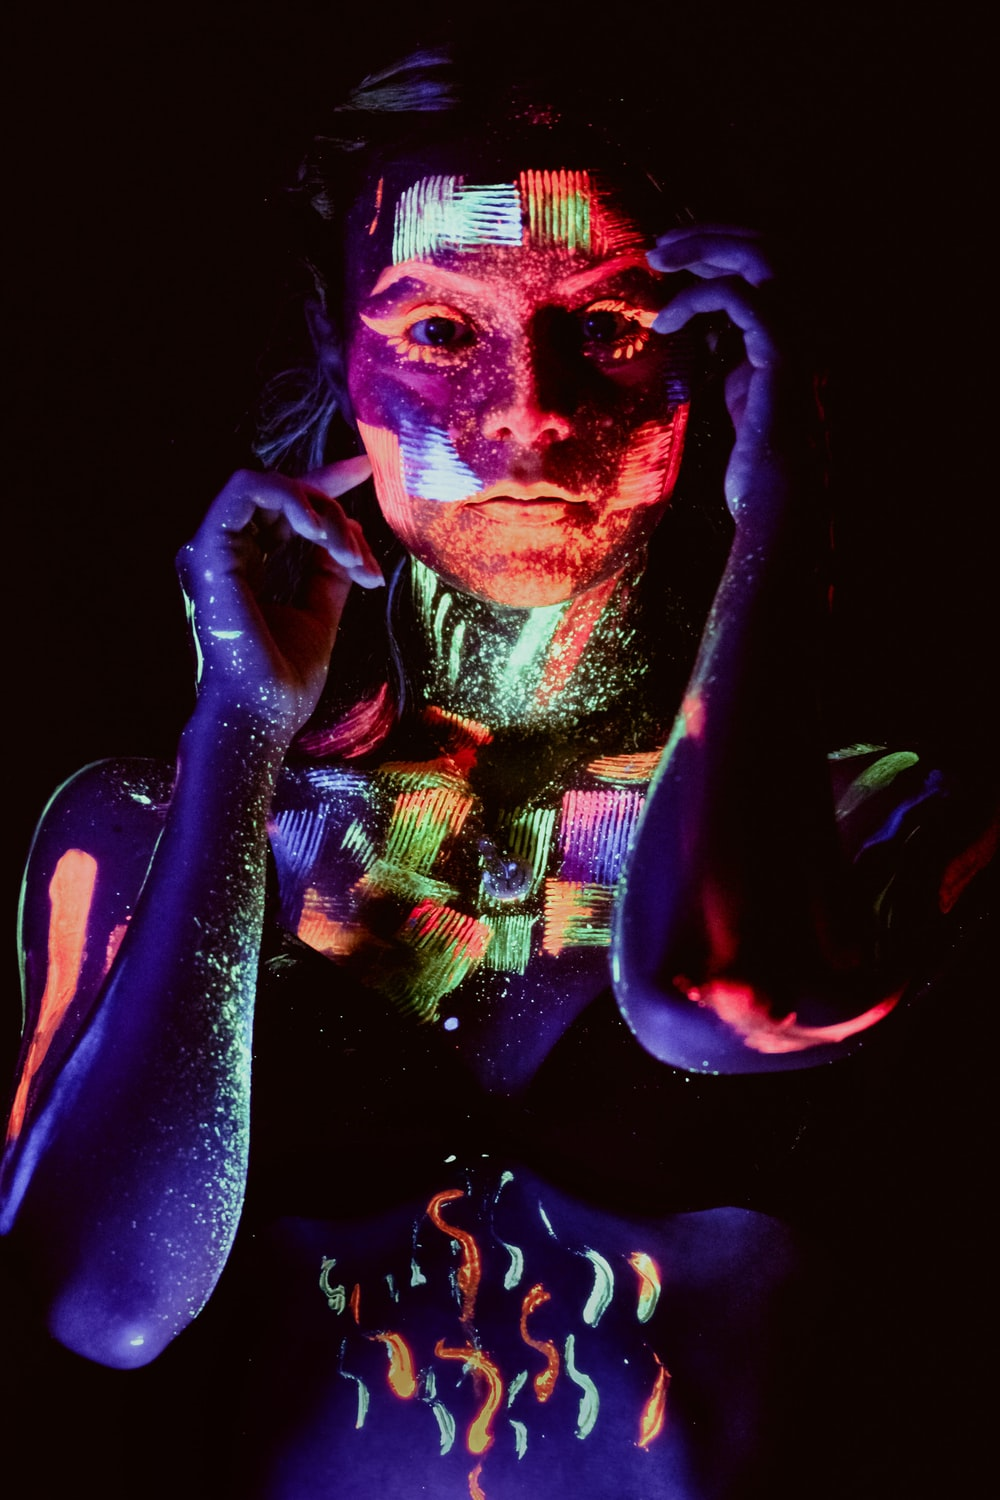 woman with neon paint on face